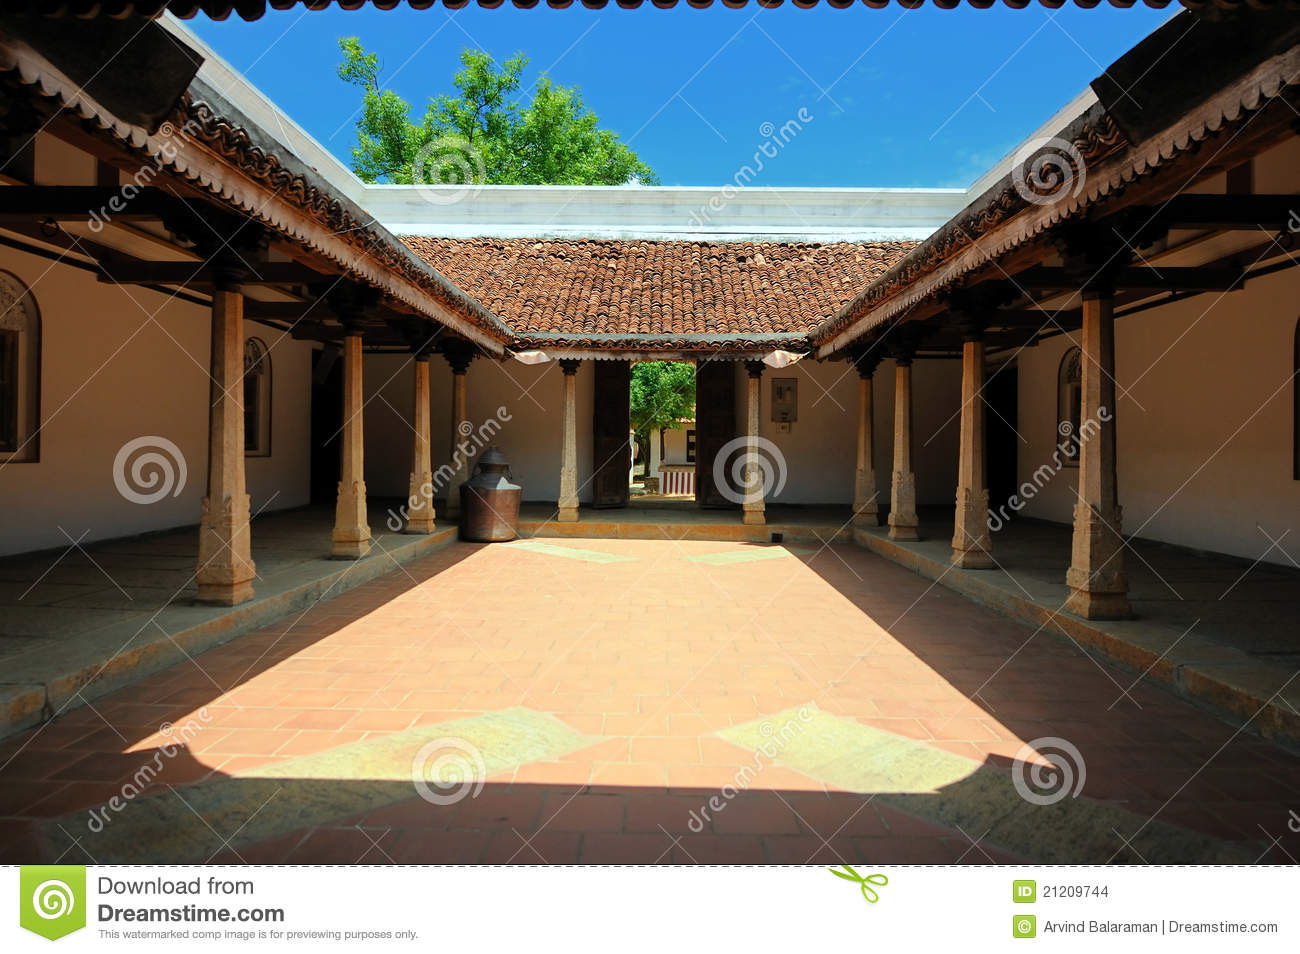 Chettinad house stock images image 21209744 for Chettinad house architecture design